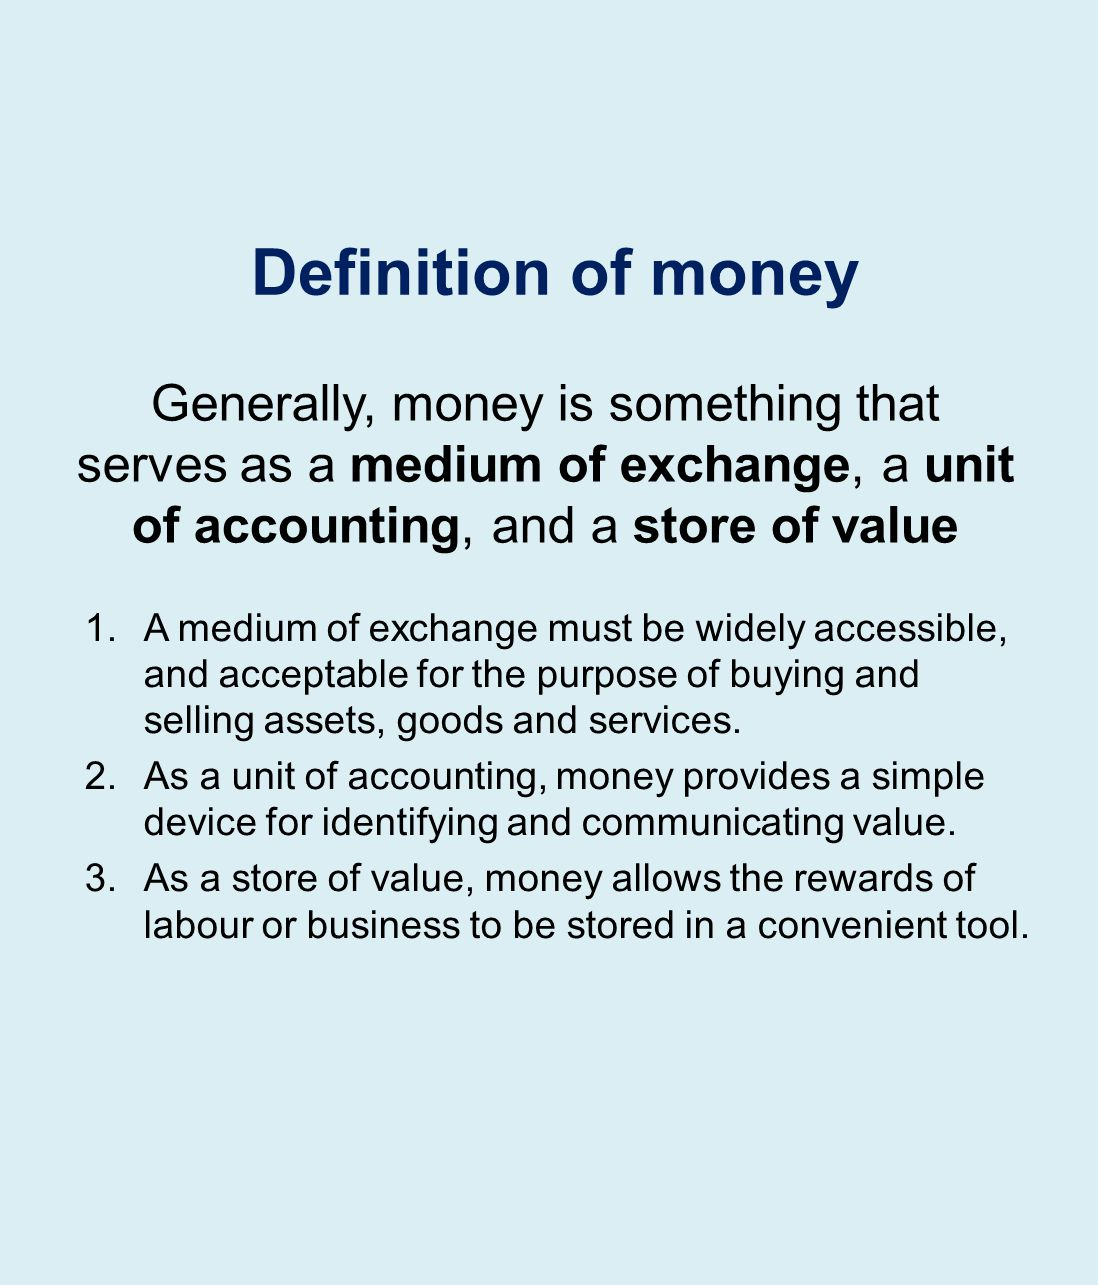 Generally, money is something that serves as a medium of exchange, a unit of accounting, and a store of value 1.A medium of exchange must be widely accessible, and acceptable for the purpose of buying and selling assets, goods and services.